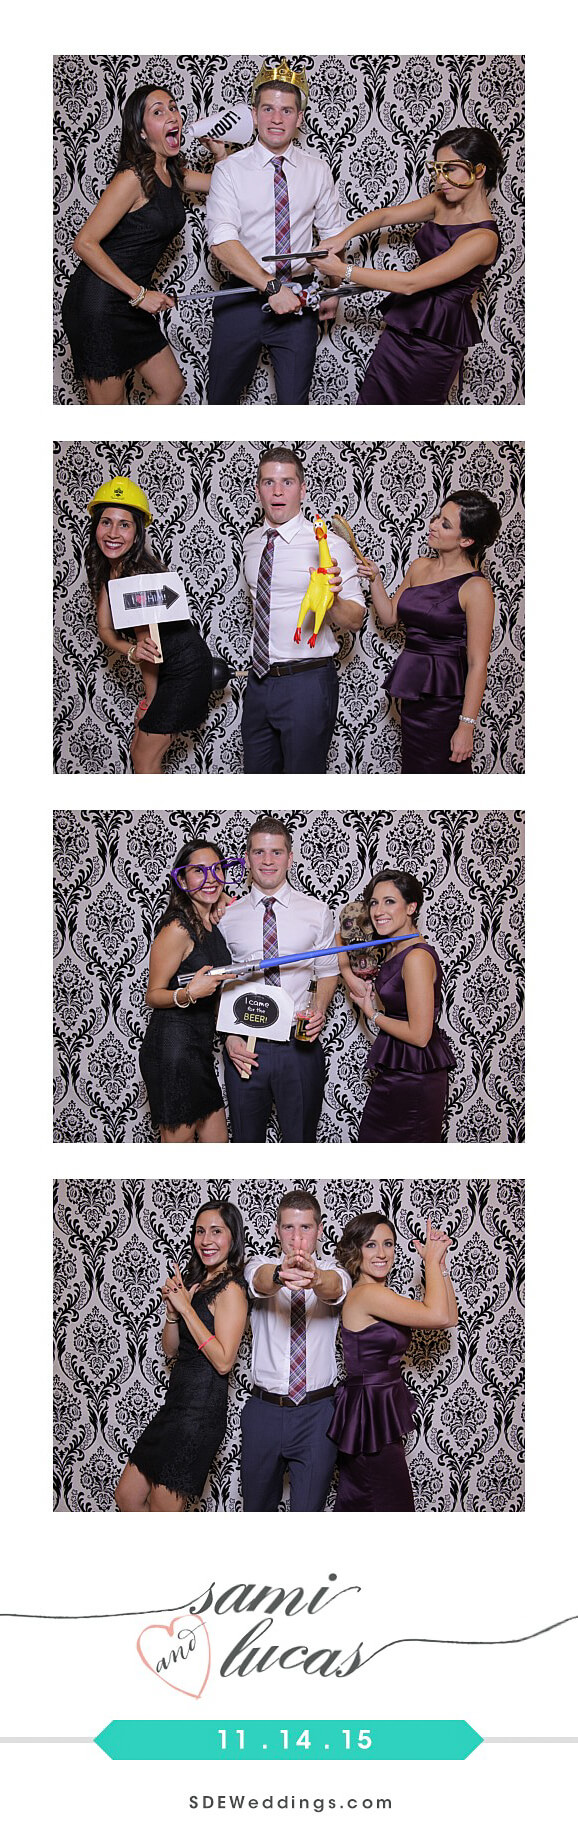 Toronto Paradise Banquet Hall Wedding Photo Booth Rental 1